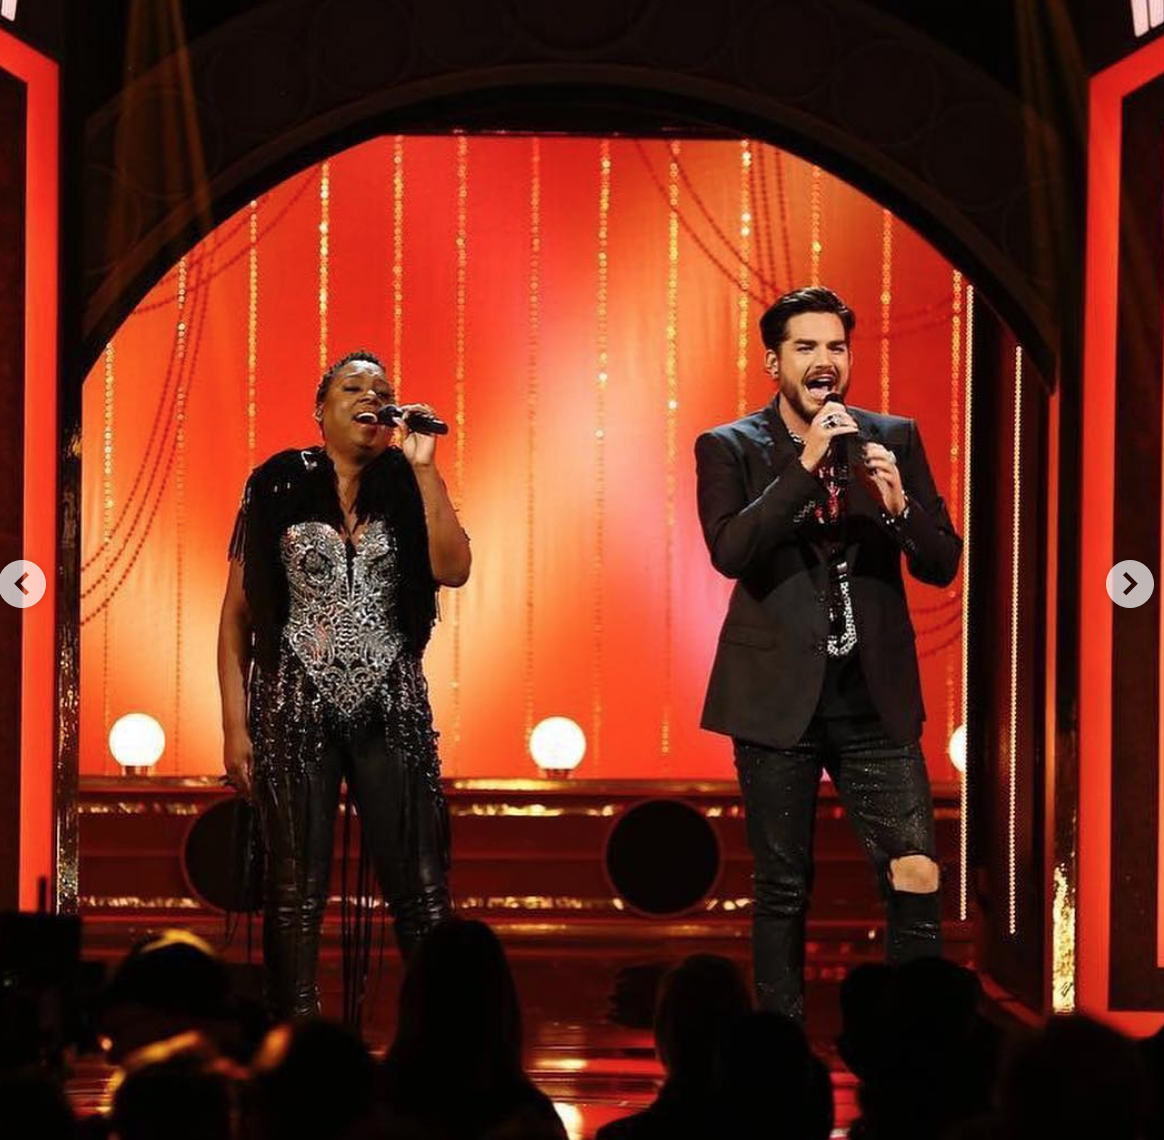 Stunning appearance on  @nbc  for the worldwide most amazing musical  @wicked_musical starring  @ledisi  &  @adamlambert  wearin gour fashion designers  @lorysunartistry  #frontrow  styled by  @goldeeluxe  fashion provided by  #ivanbittonstylehouse